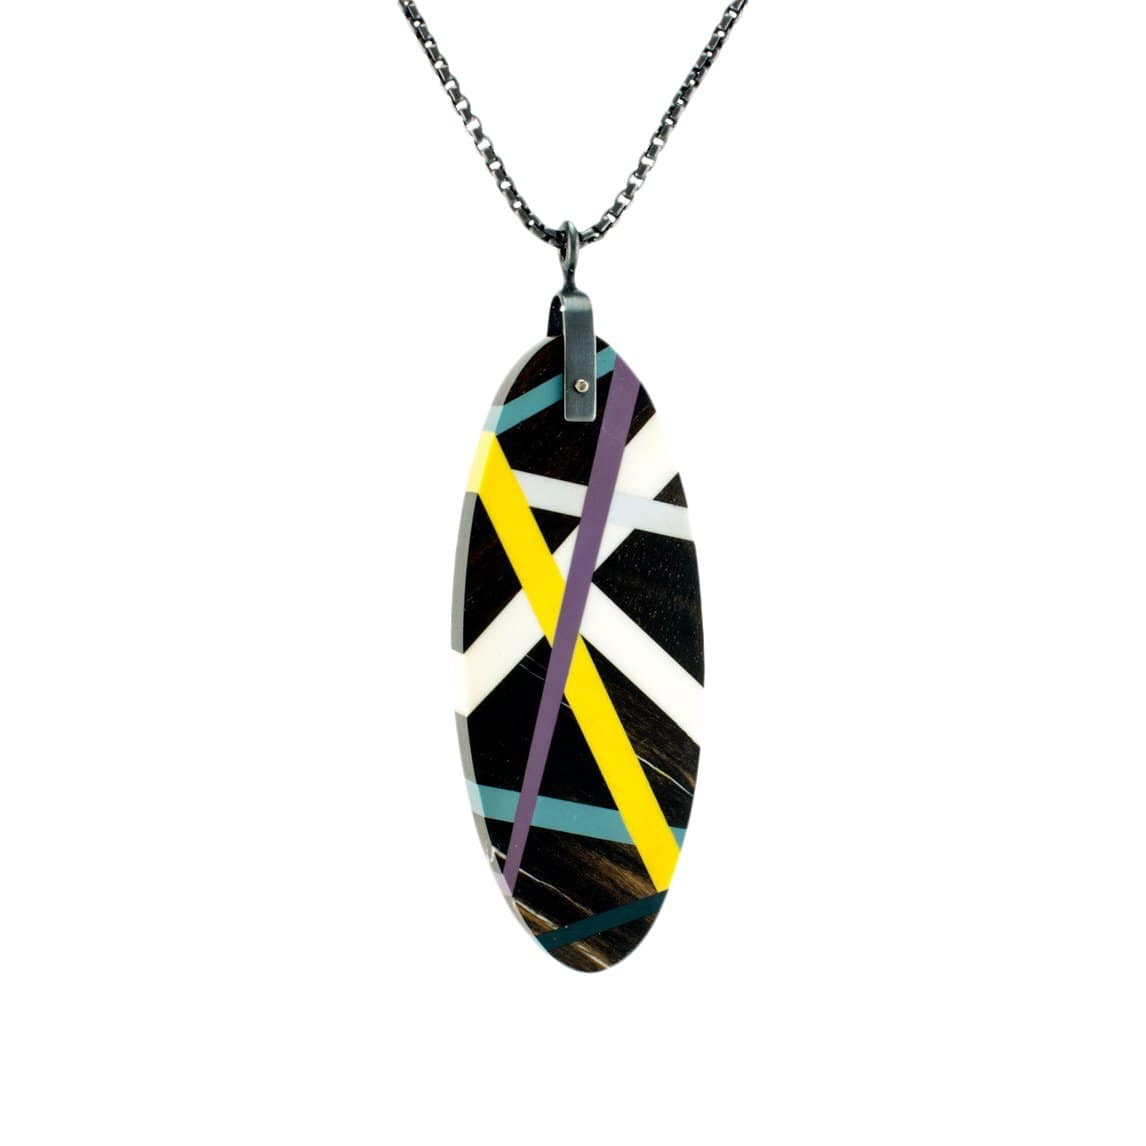 Laura Jaklitsch Jewelry Necklaces Large Tab Ebony Wood with Purple/Yellow/Teal Inlay Necklace